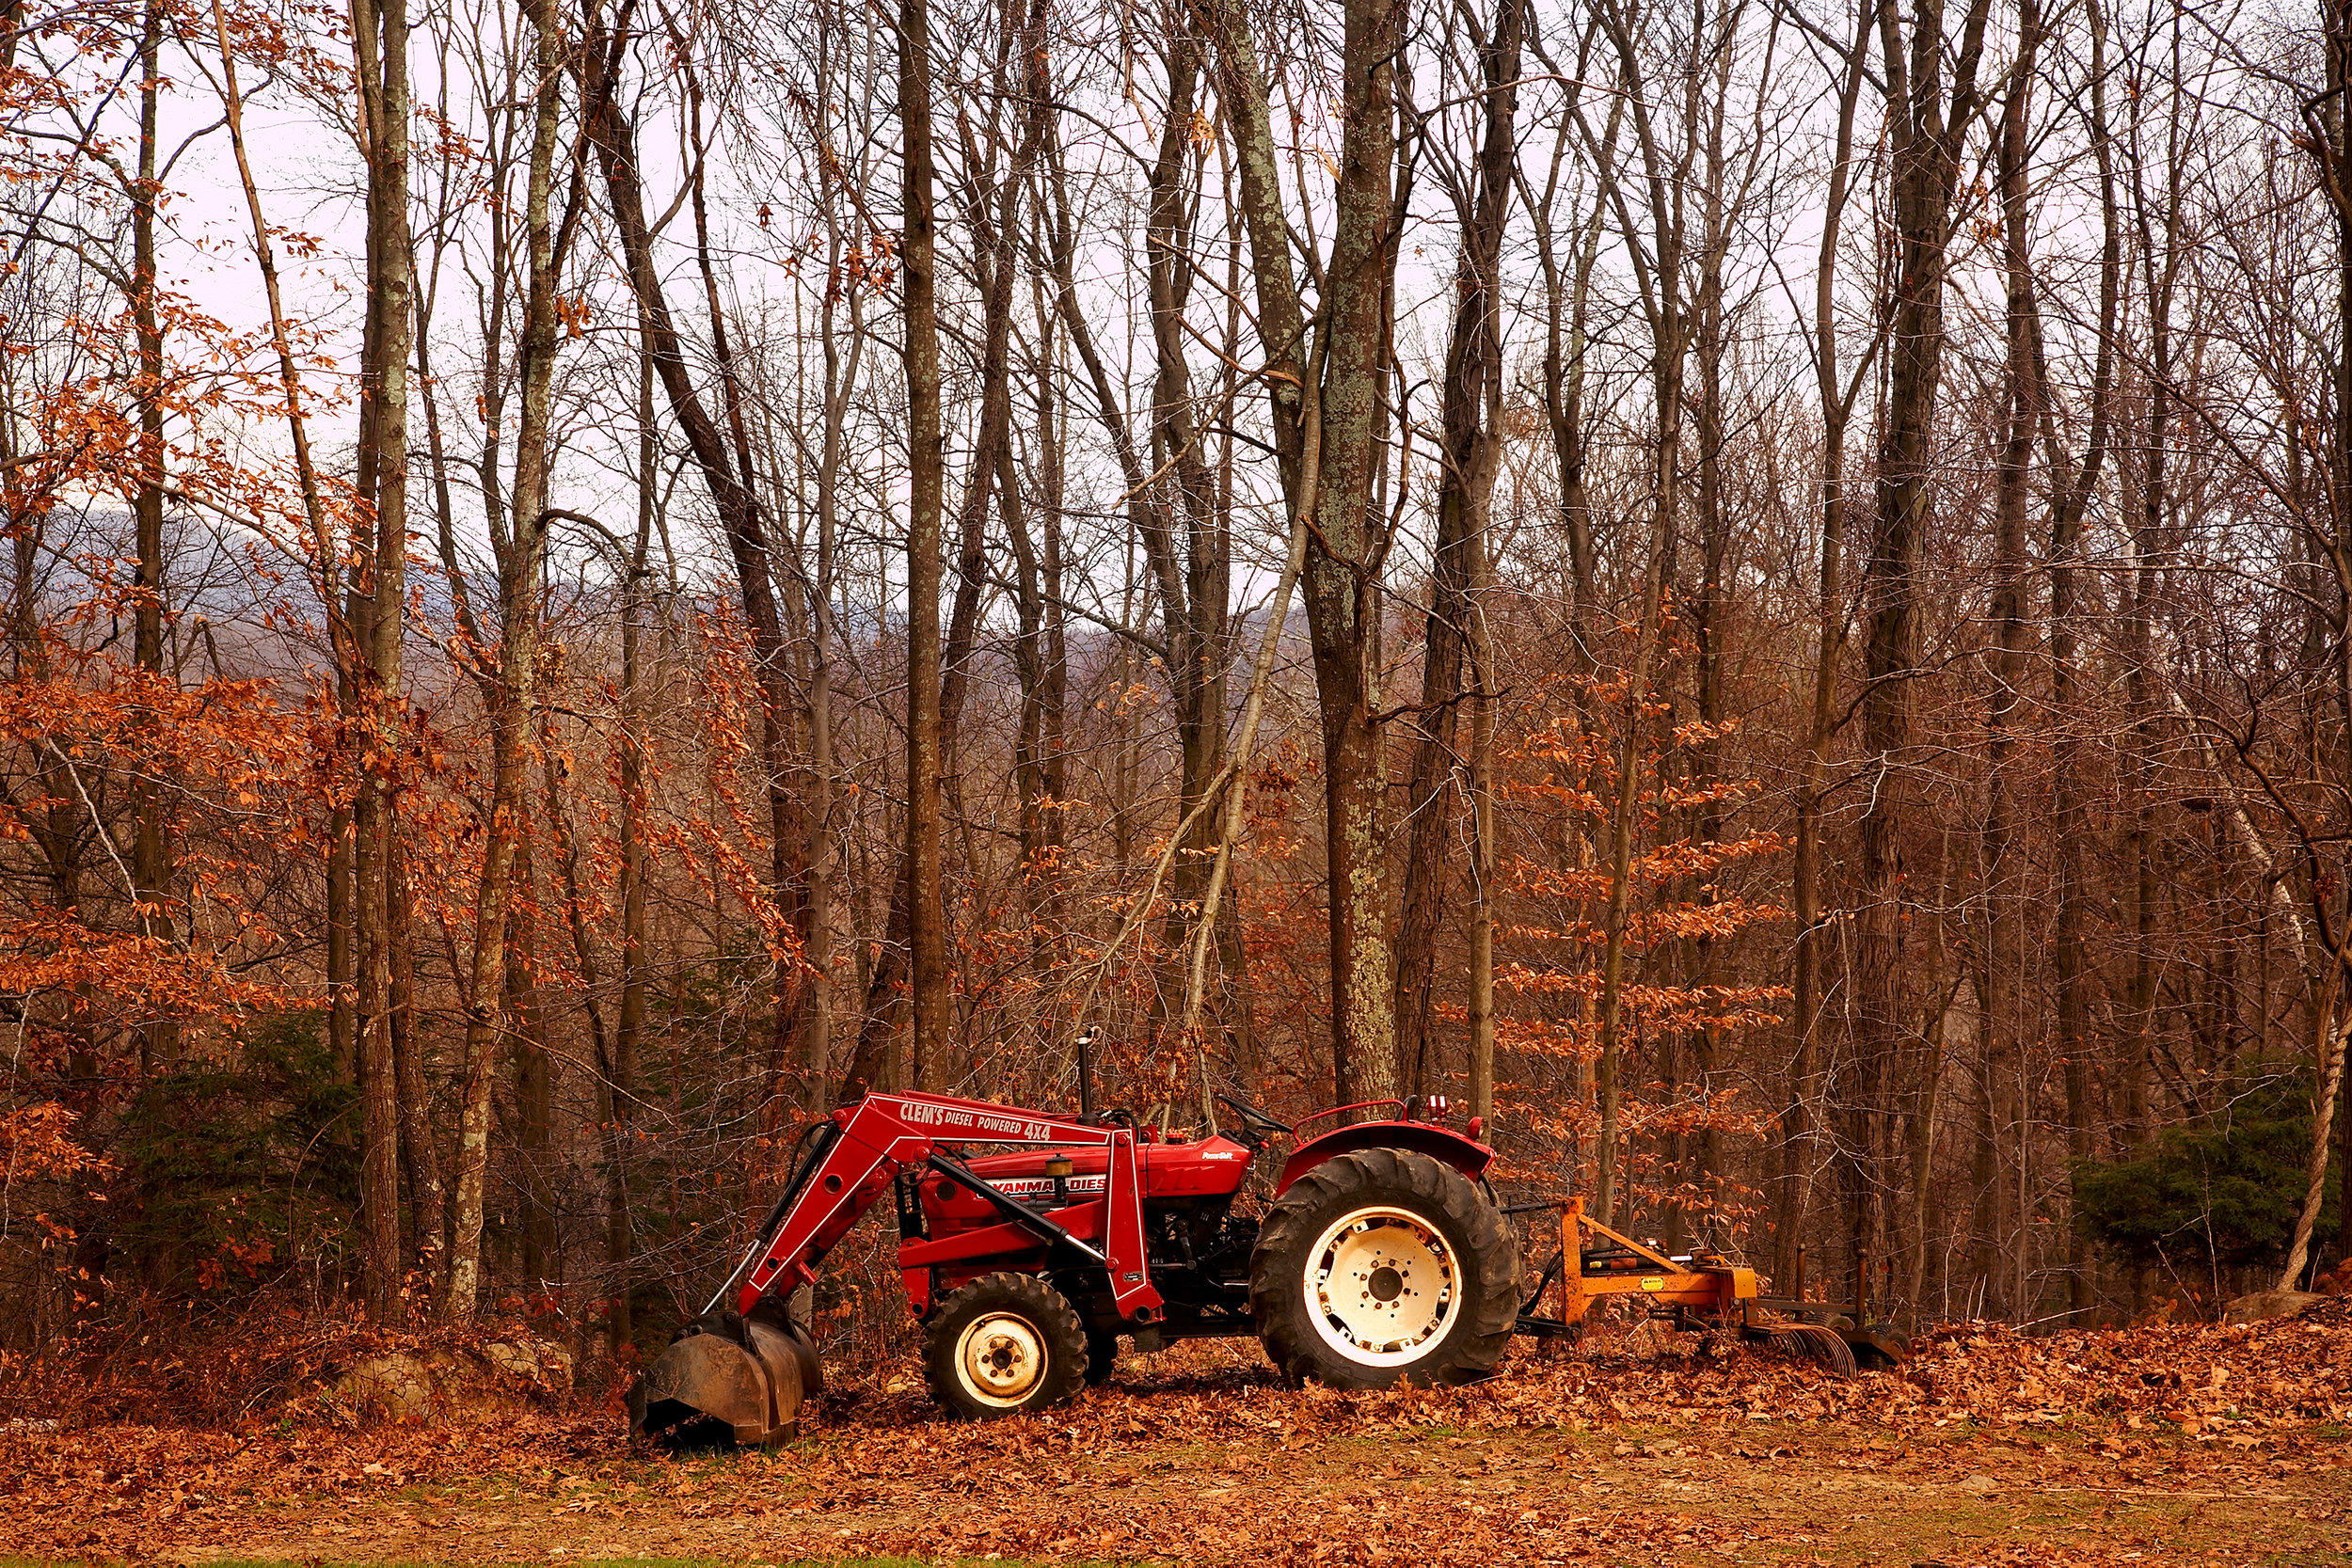 FARM-TRACTOR-AT-WILTSHIRE-FARM-C-RED-FALL-AUTUM-©-JONATHAN-R.-BECKERMAN-PHOTOGRAPHY-02.jpg